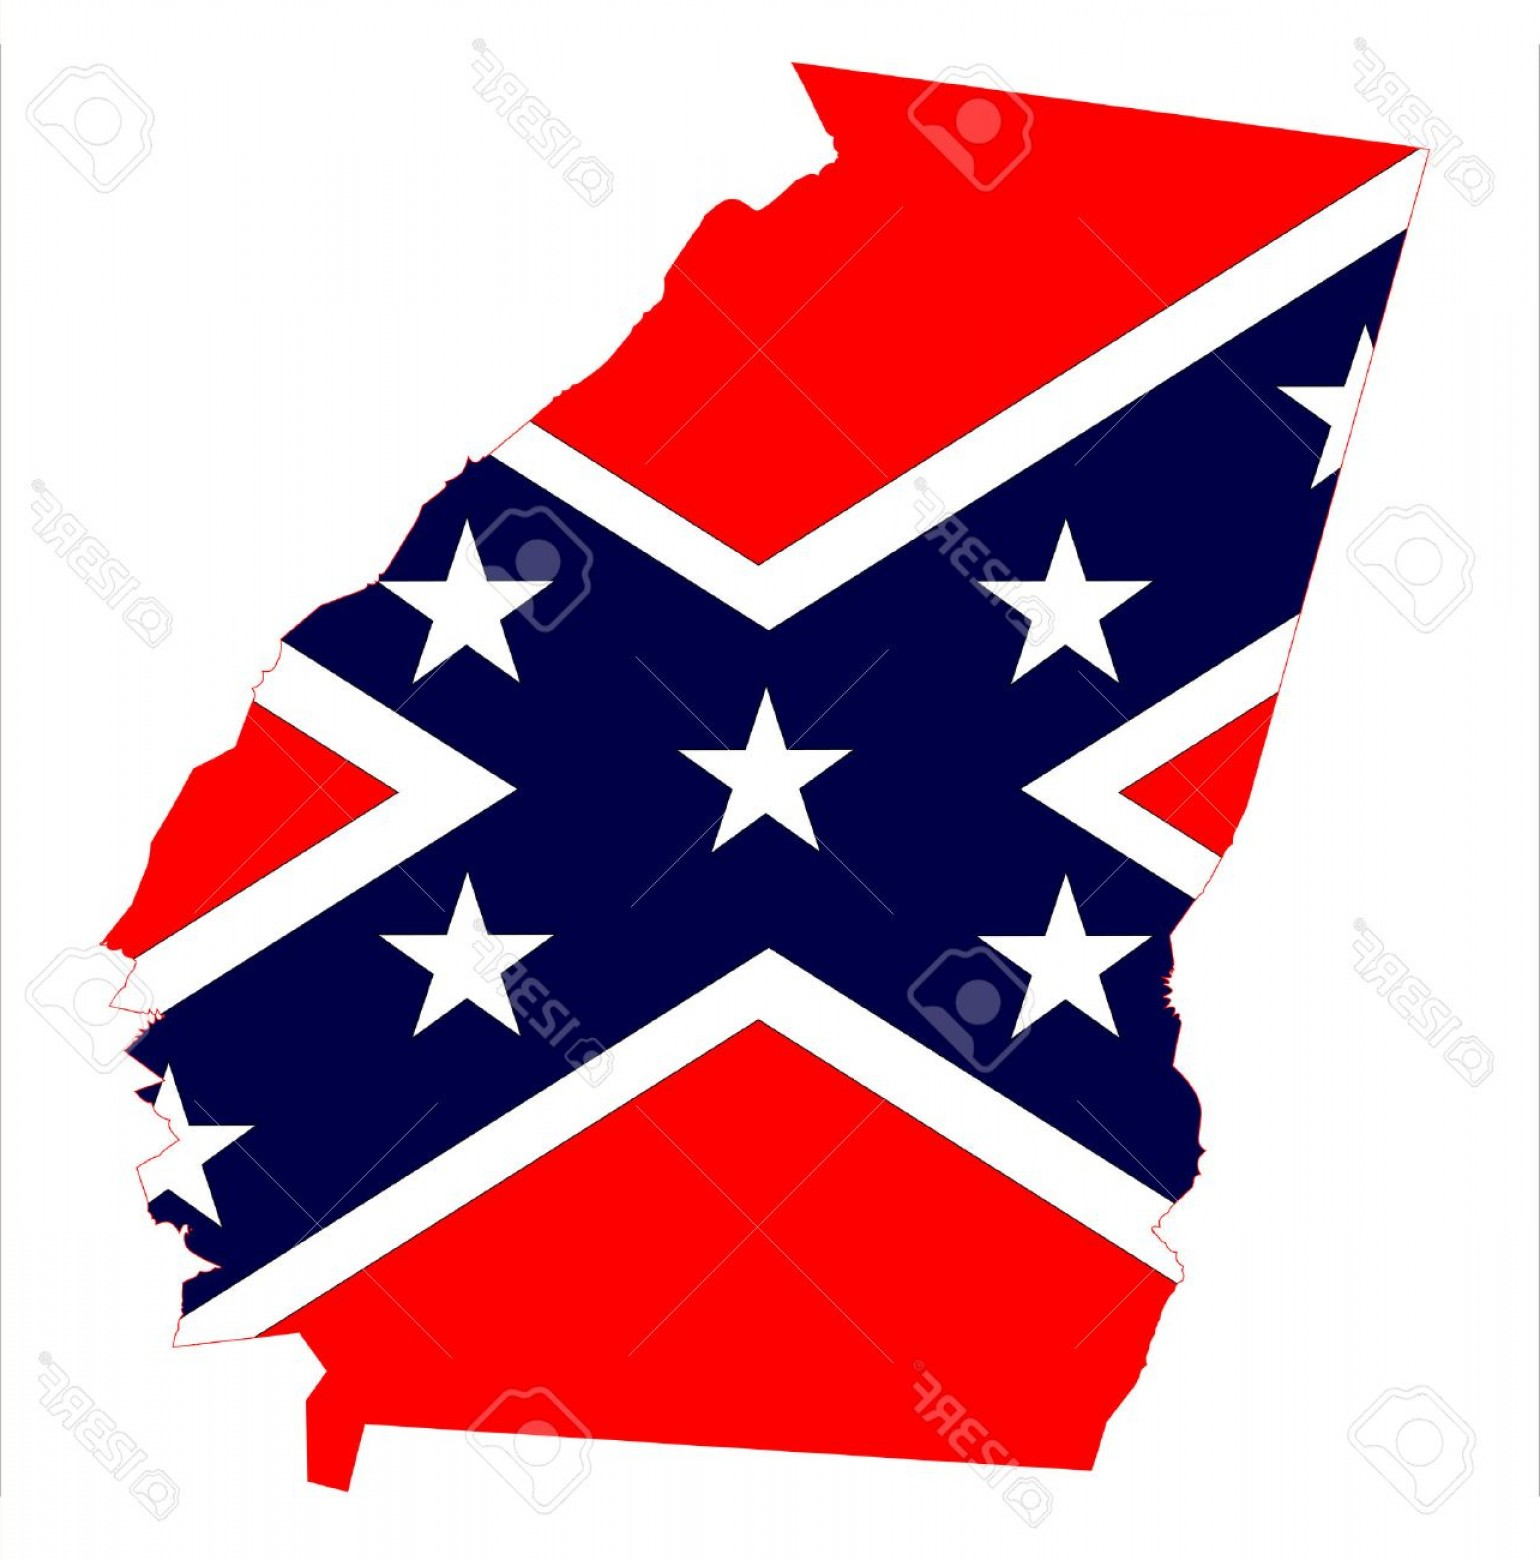 1540x1560 Photostock Vector State Map Outline Of Georgia With Confederate